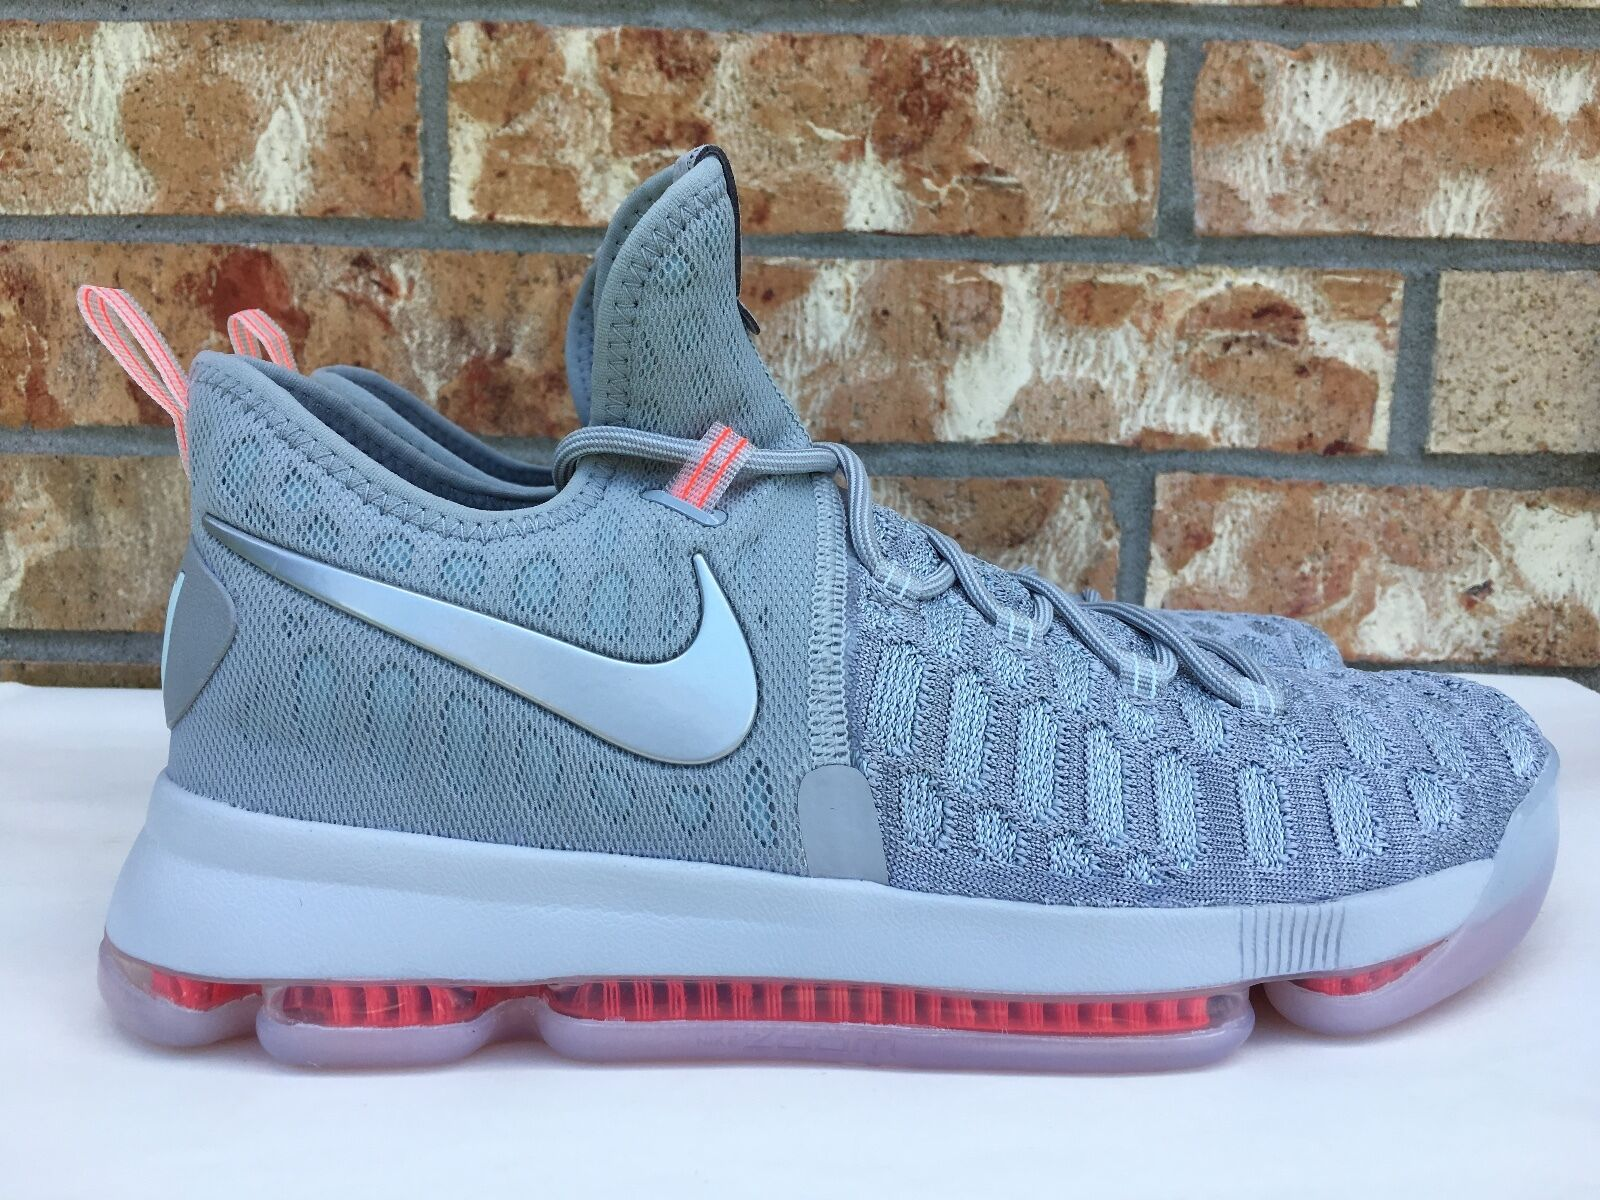 Men's Nike Zoom KD 9 Limited Pre-Heat Wolf Grey Pink Shoes Size 10 843396-090